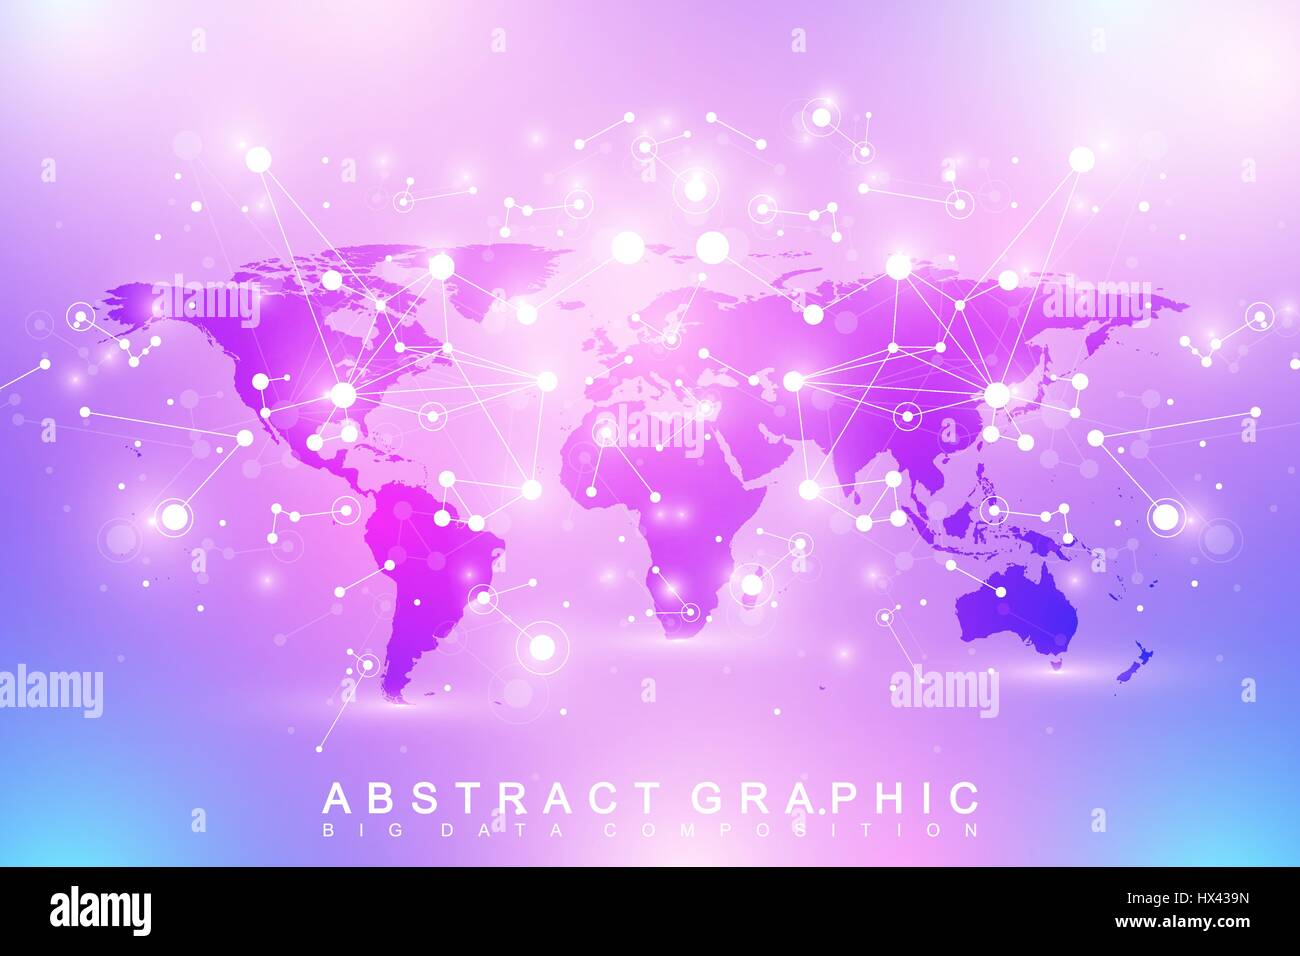 Geometric graphic background communication with political world geometric graphic background communication with political world map big data complex with compounds perspective gumiabroncs Choice Image